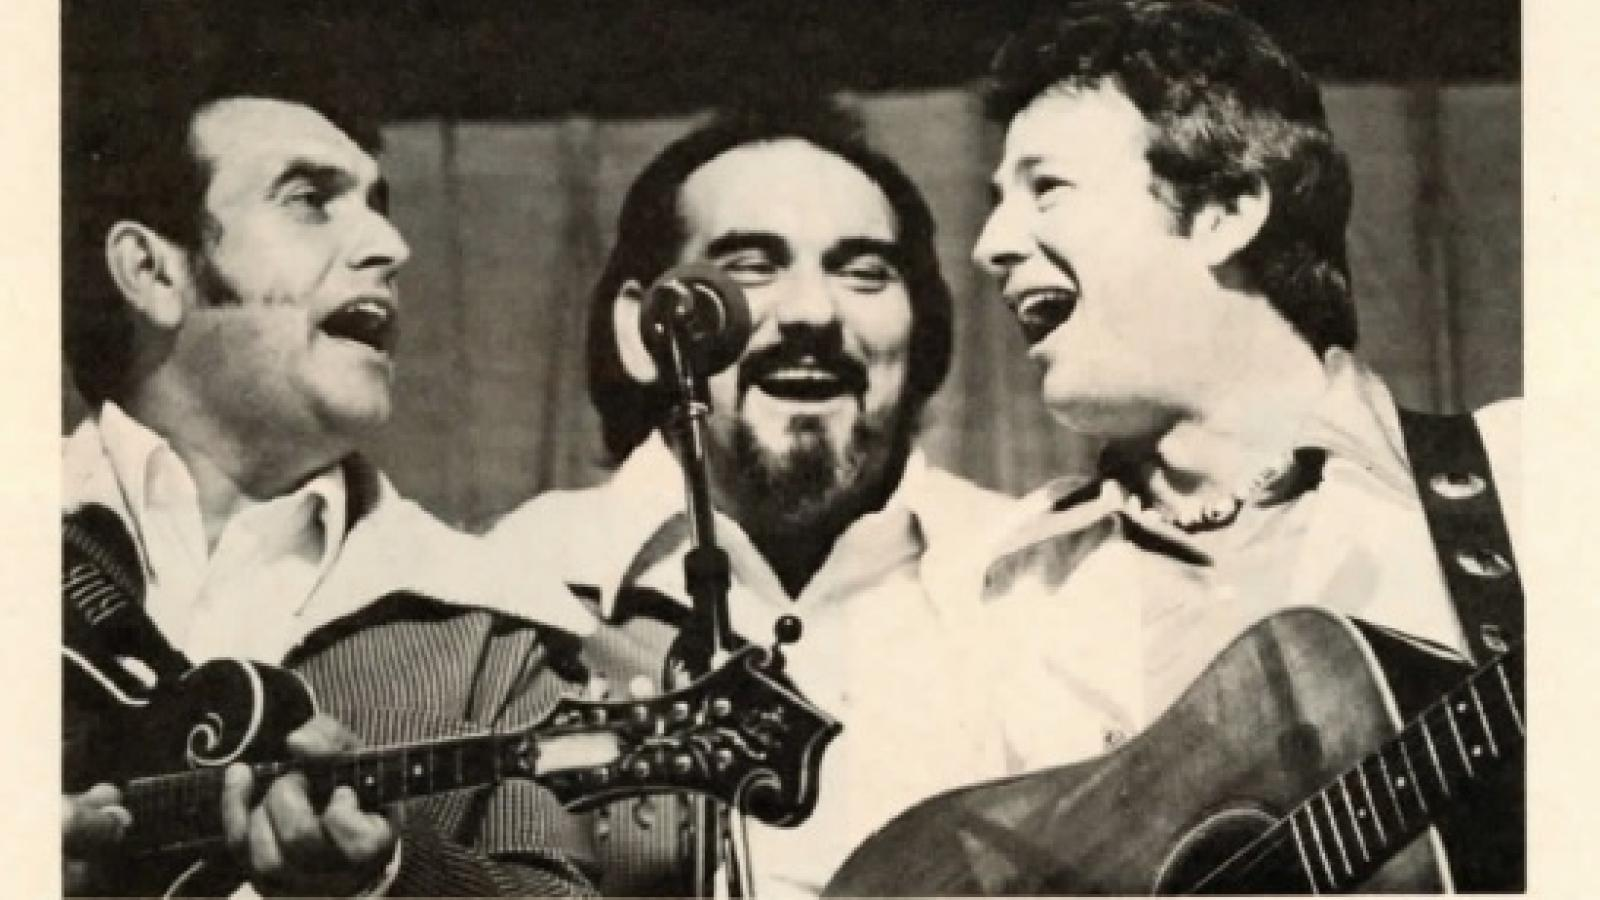 The Osbourne Brothers (who grew up near Dayton, Ohio) in Bluegrass 77 magazine.